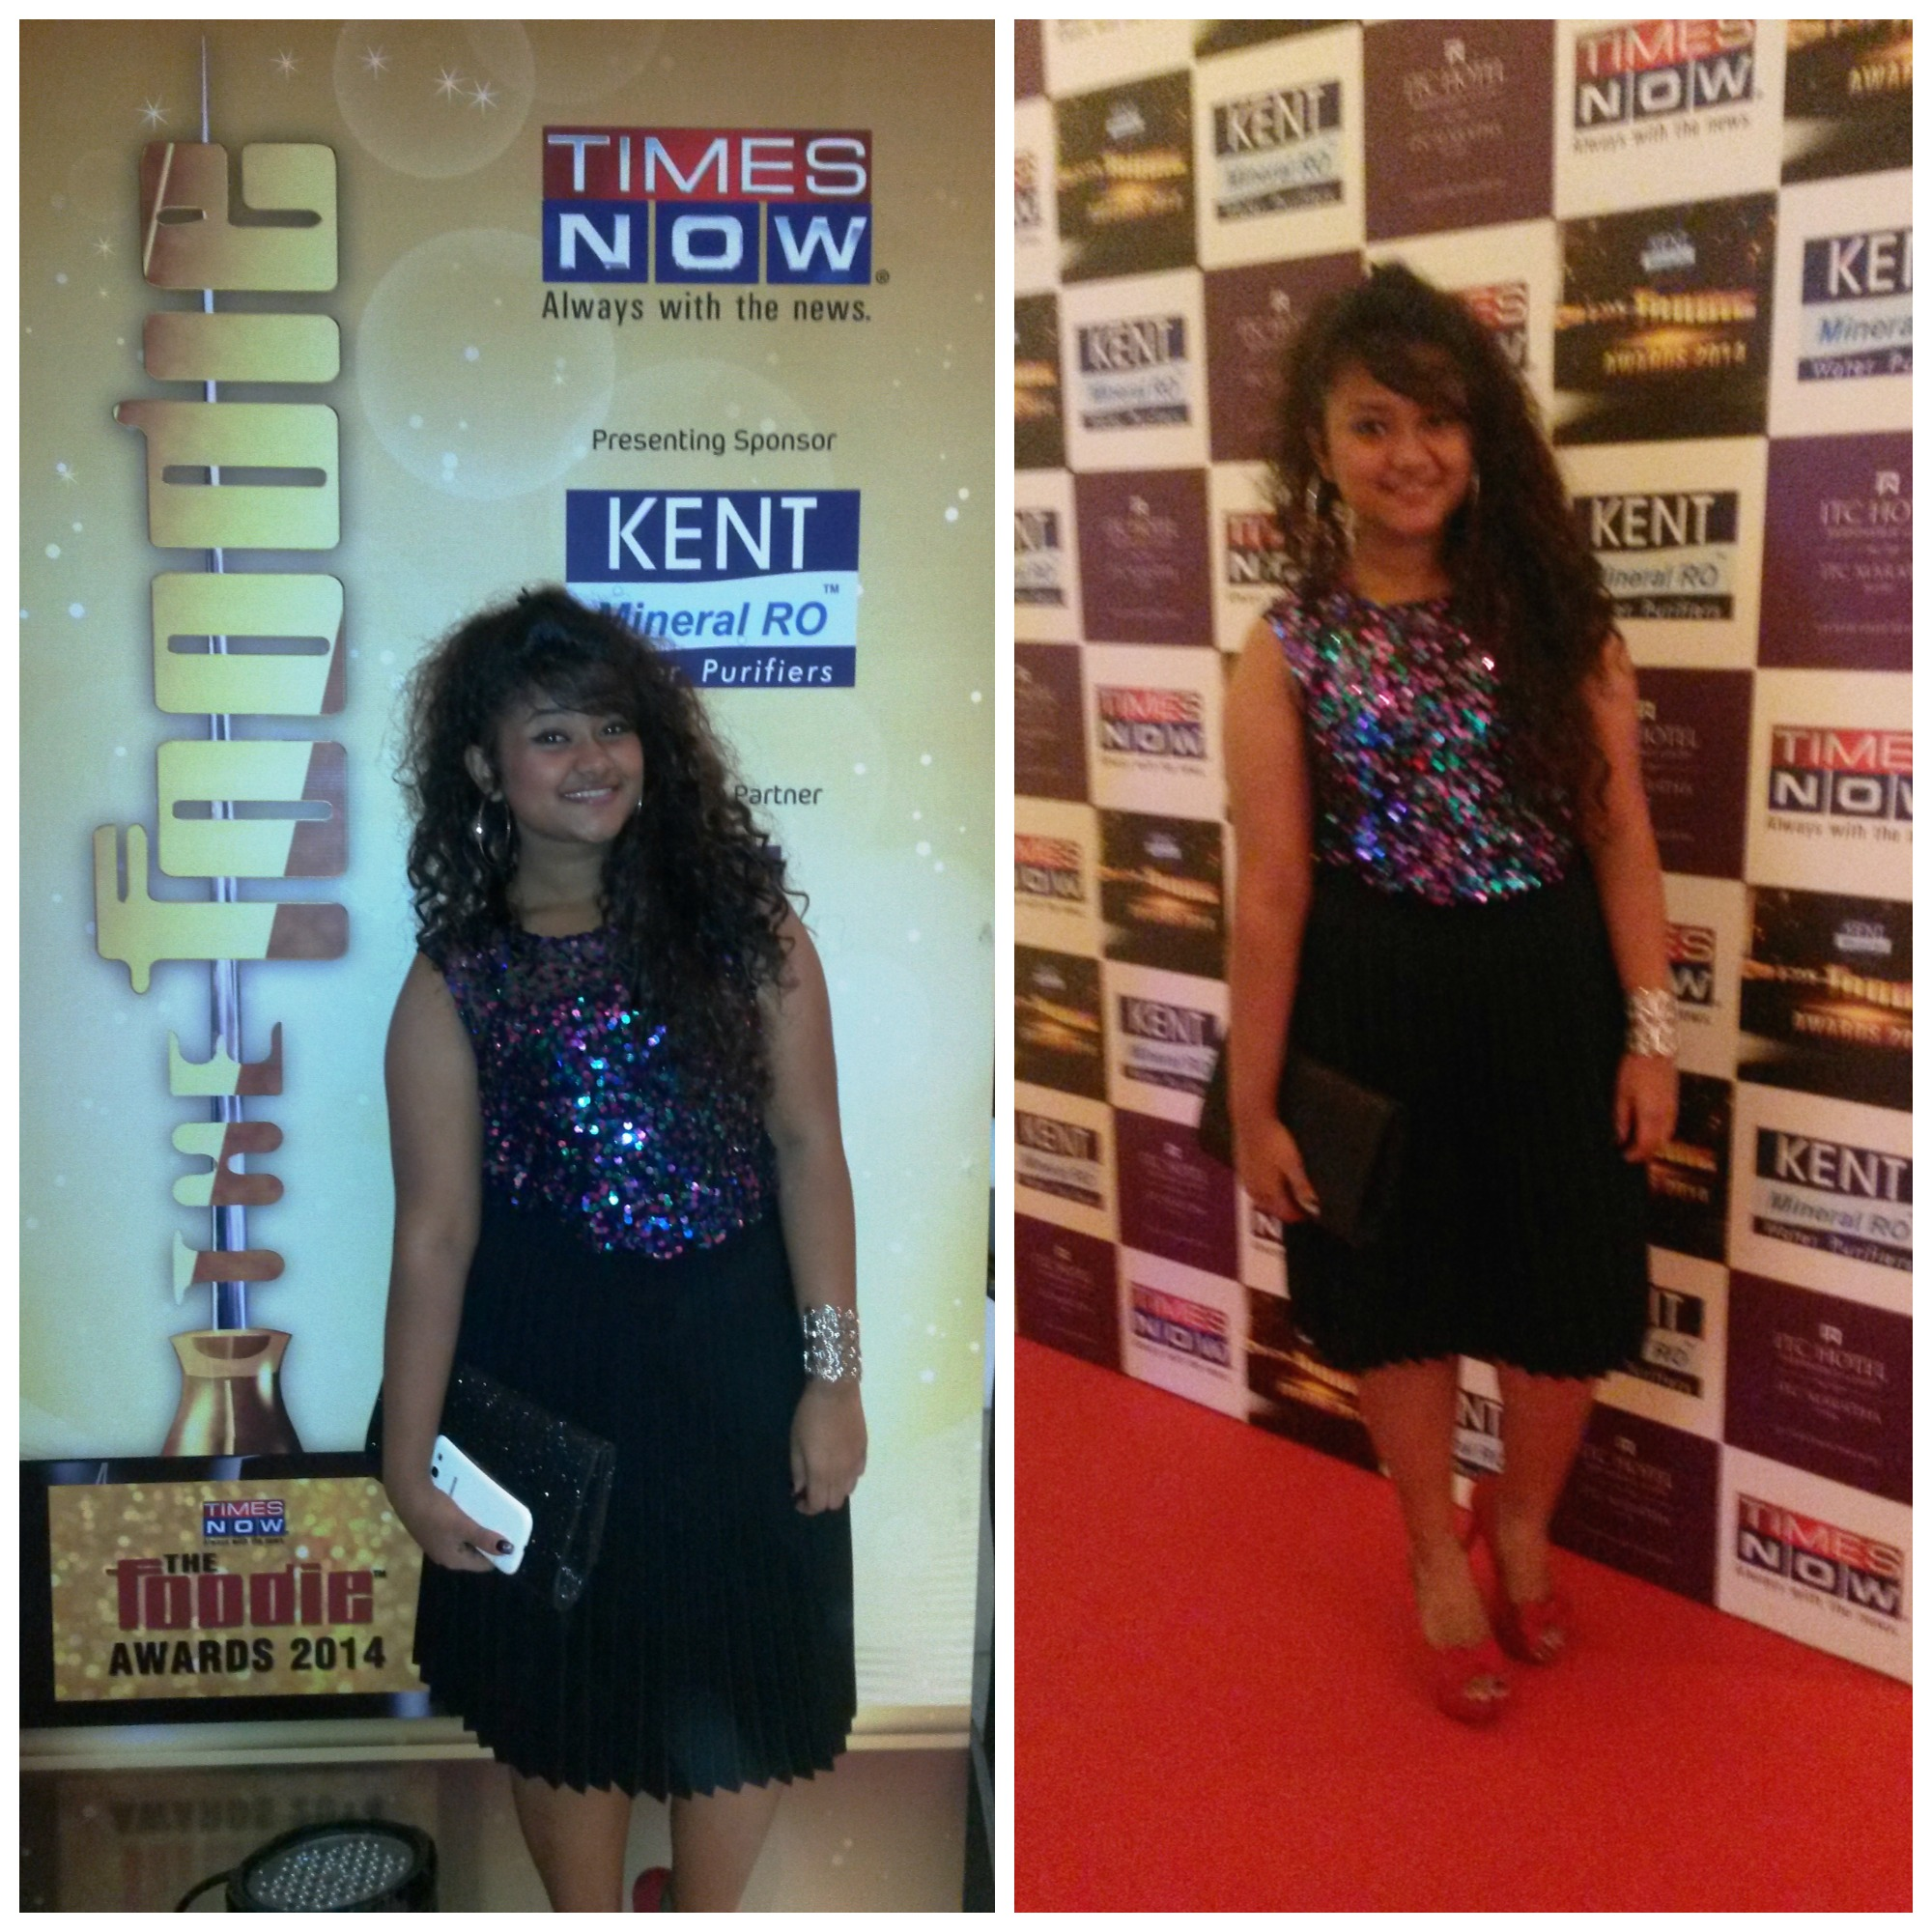 Deane Foodie Awards Pic - Copy